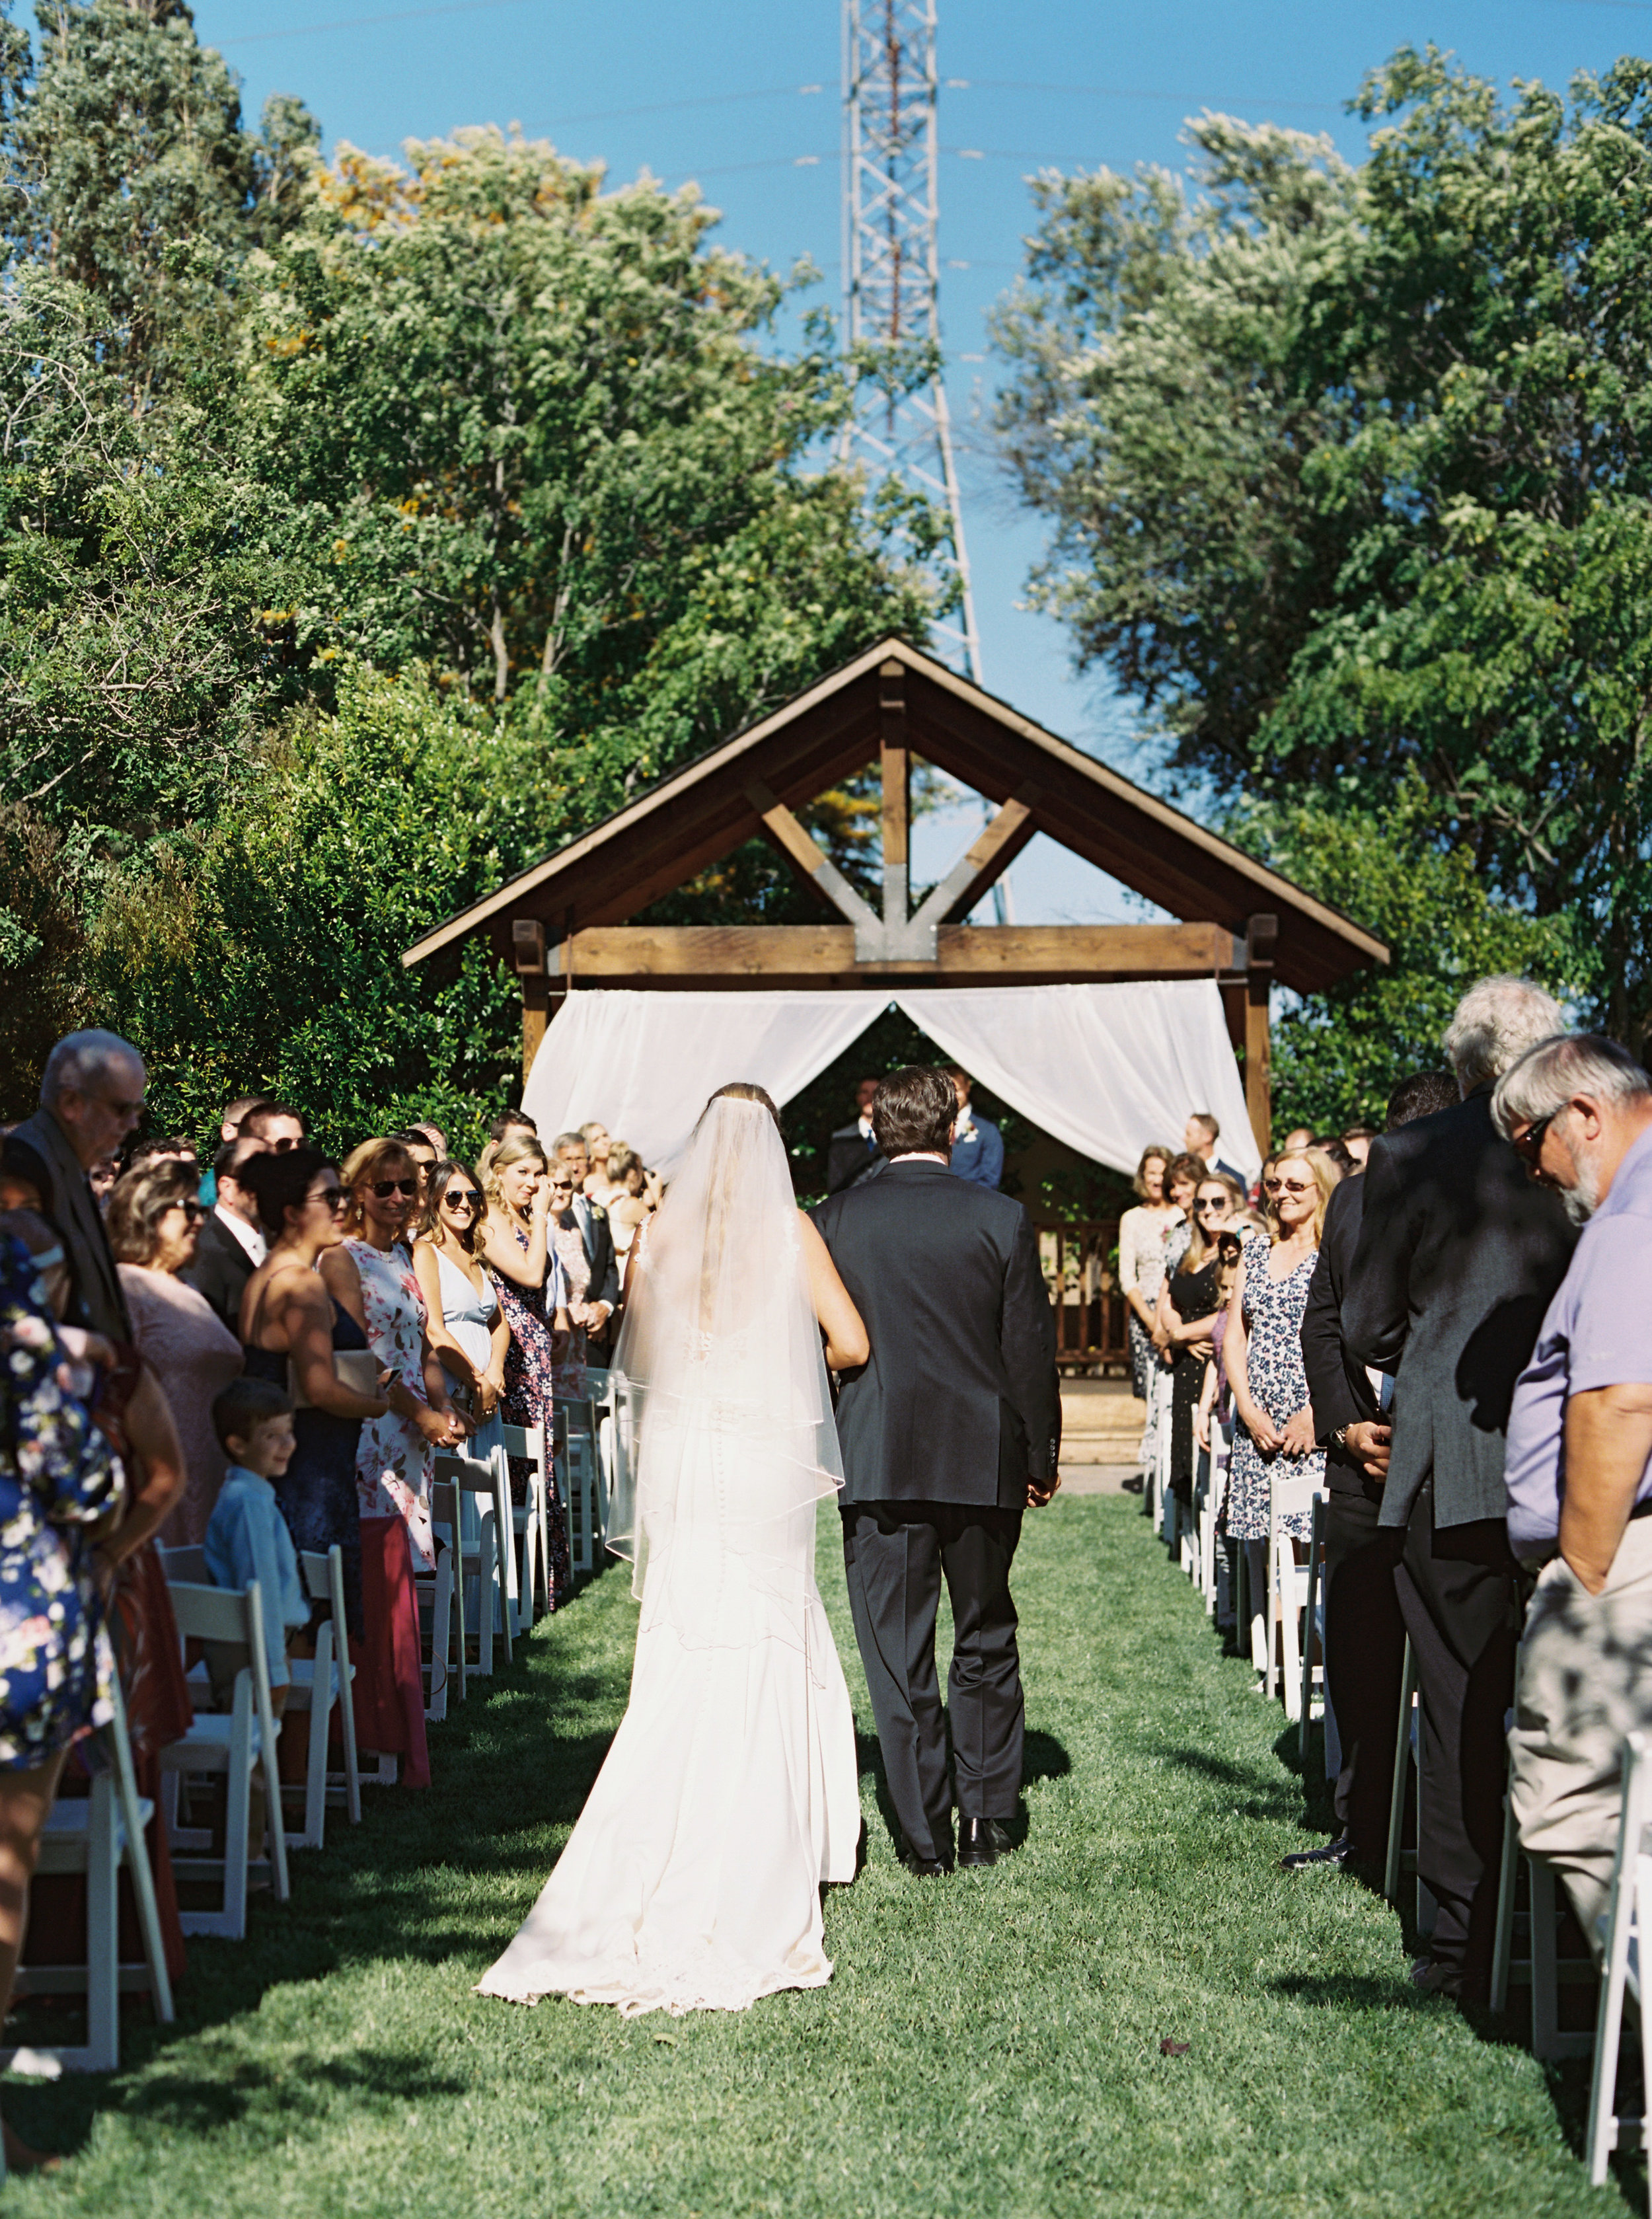 Crooked-vine-winery-wedding-in-livermore-california-70.jpg